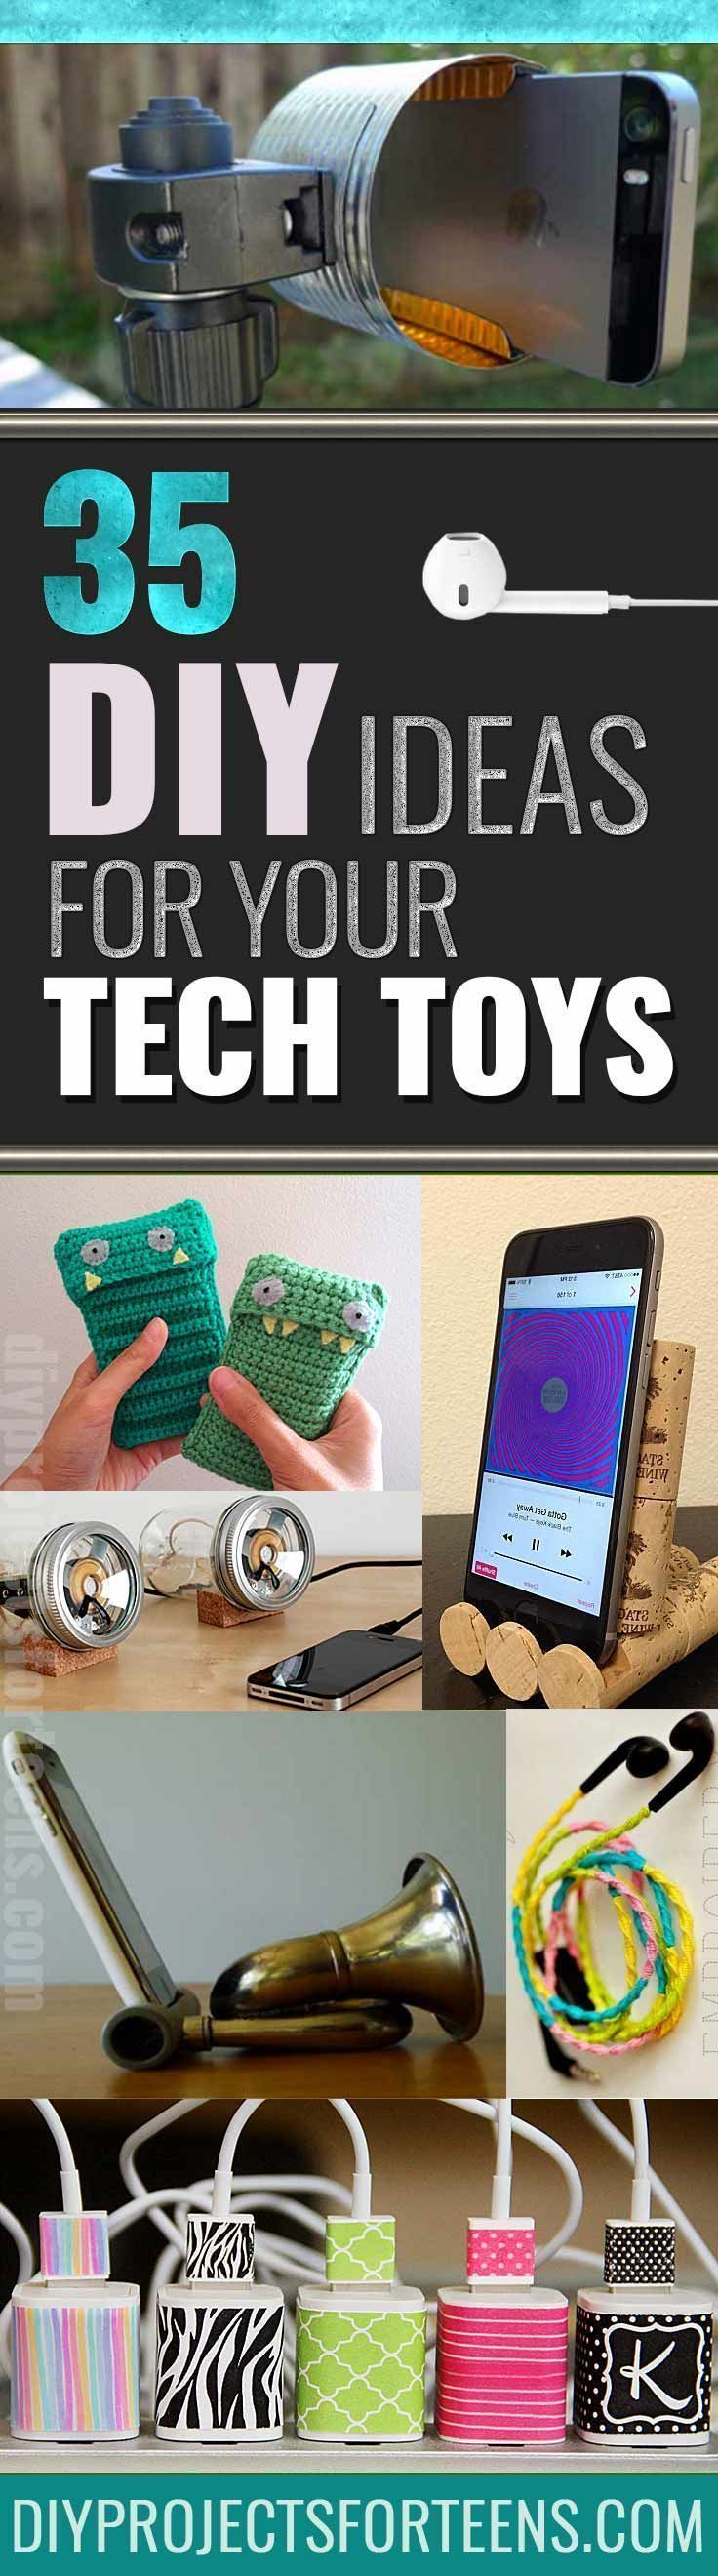 Awesome DIYs for your Tech Toys - Cool Ideas for iphone covers cases, phone chargers, speakers, headphones, monogram and crafts ideas for your case. step by step tutorials for case makeovers and creative custom iphone